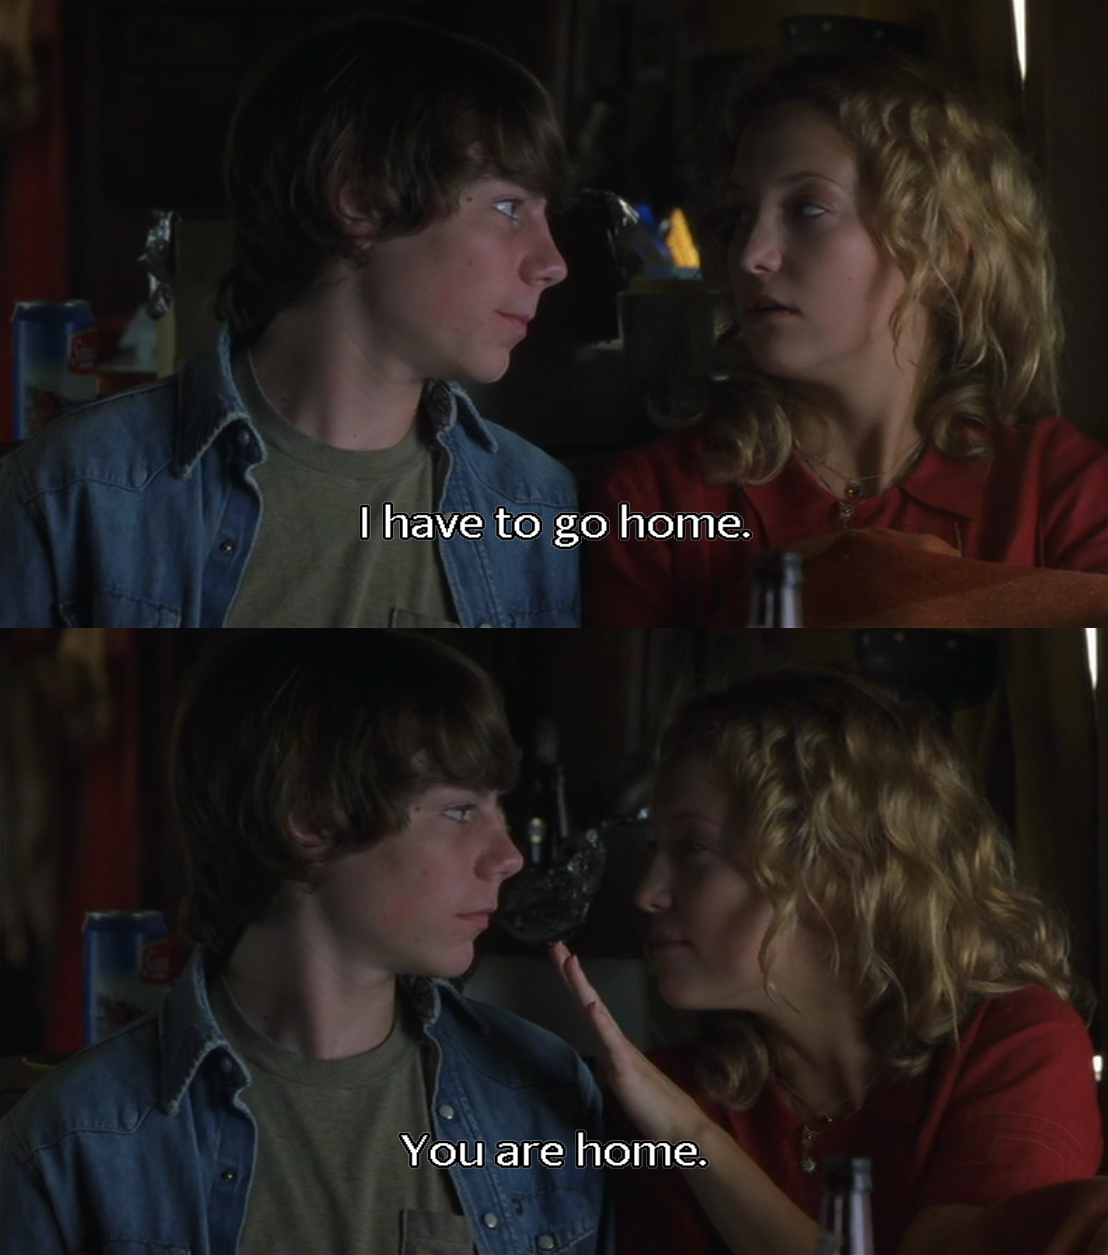 Pin By Kelsey Hill On All Things Entertainment Almost Famous Quotes Almost Famous Movies